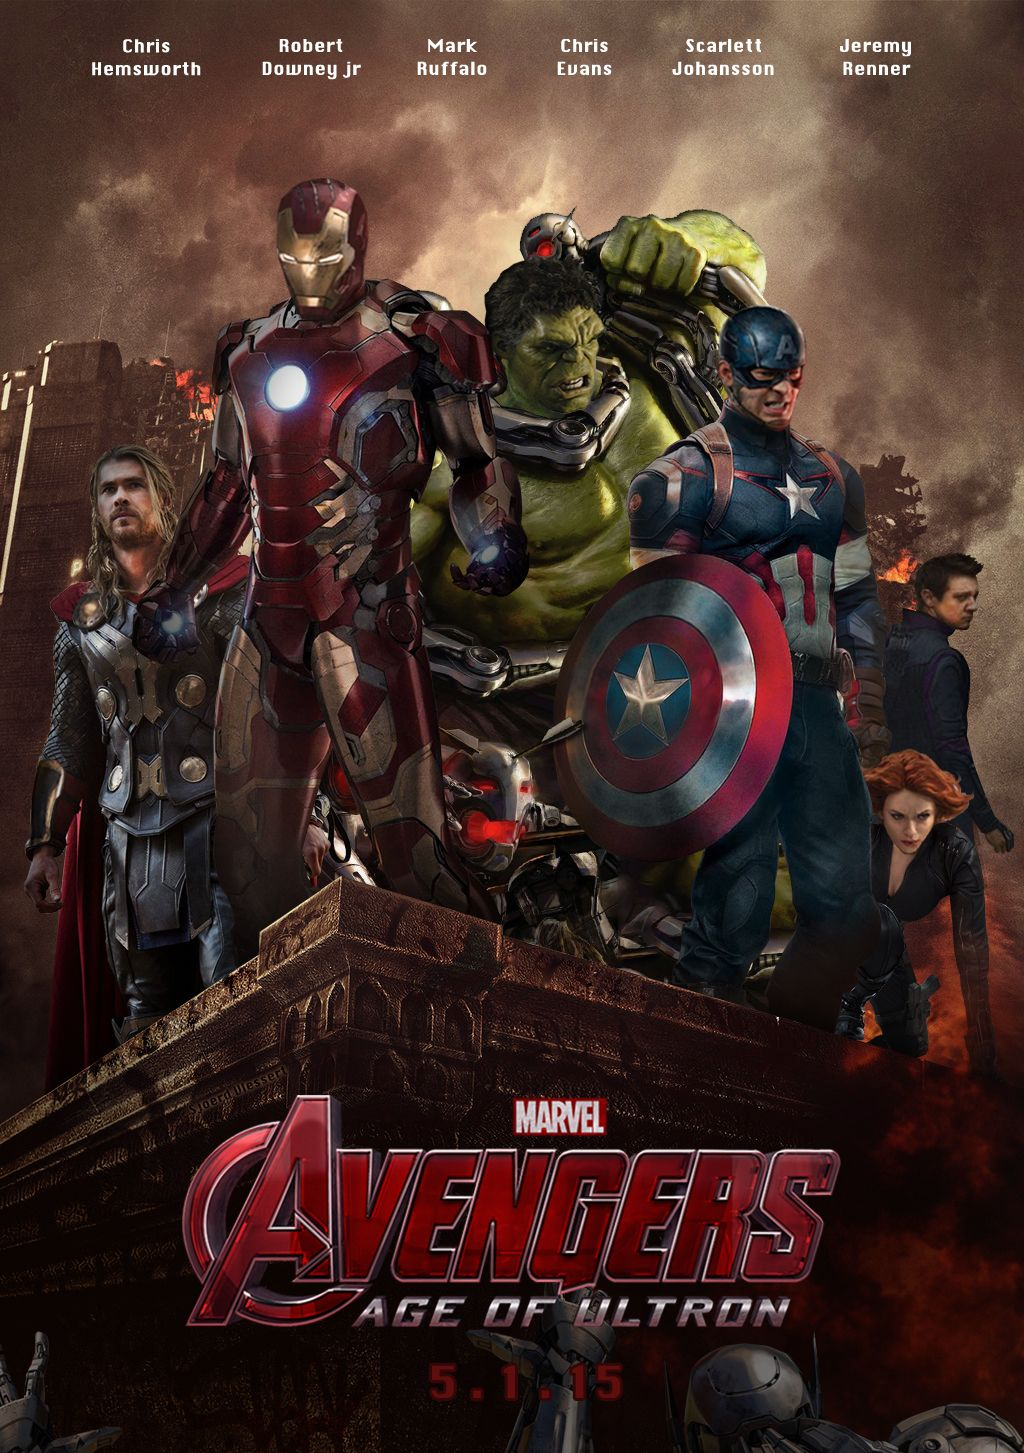 Age of Ultron poster Avengers banner